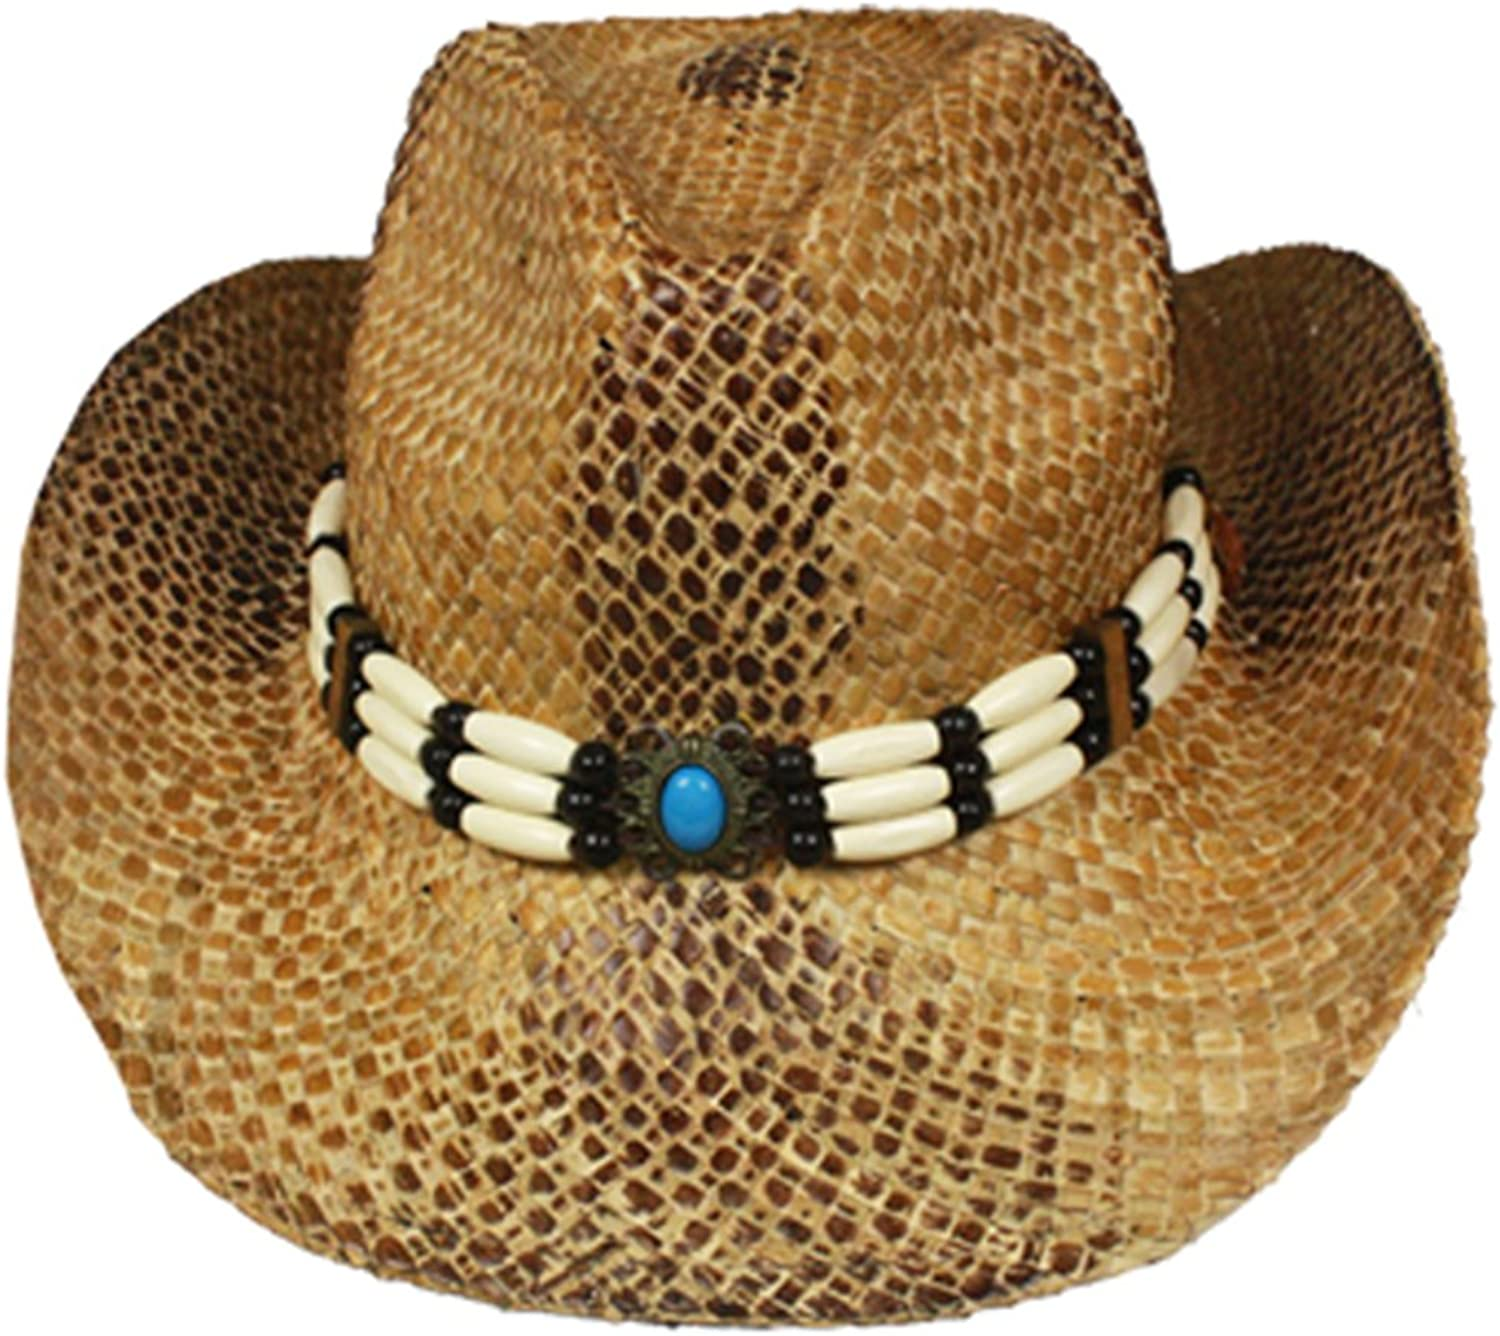 Silver Fever Fashionable Ombre Woven Straw Cowboy Hat with Cutouts and Beads